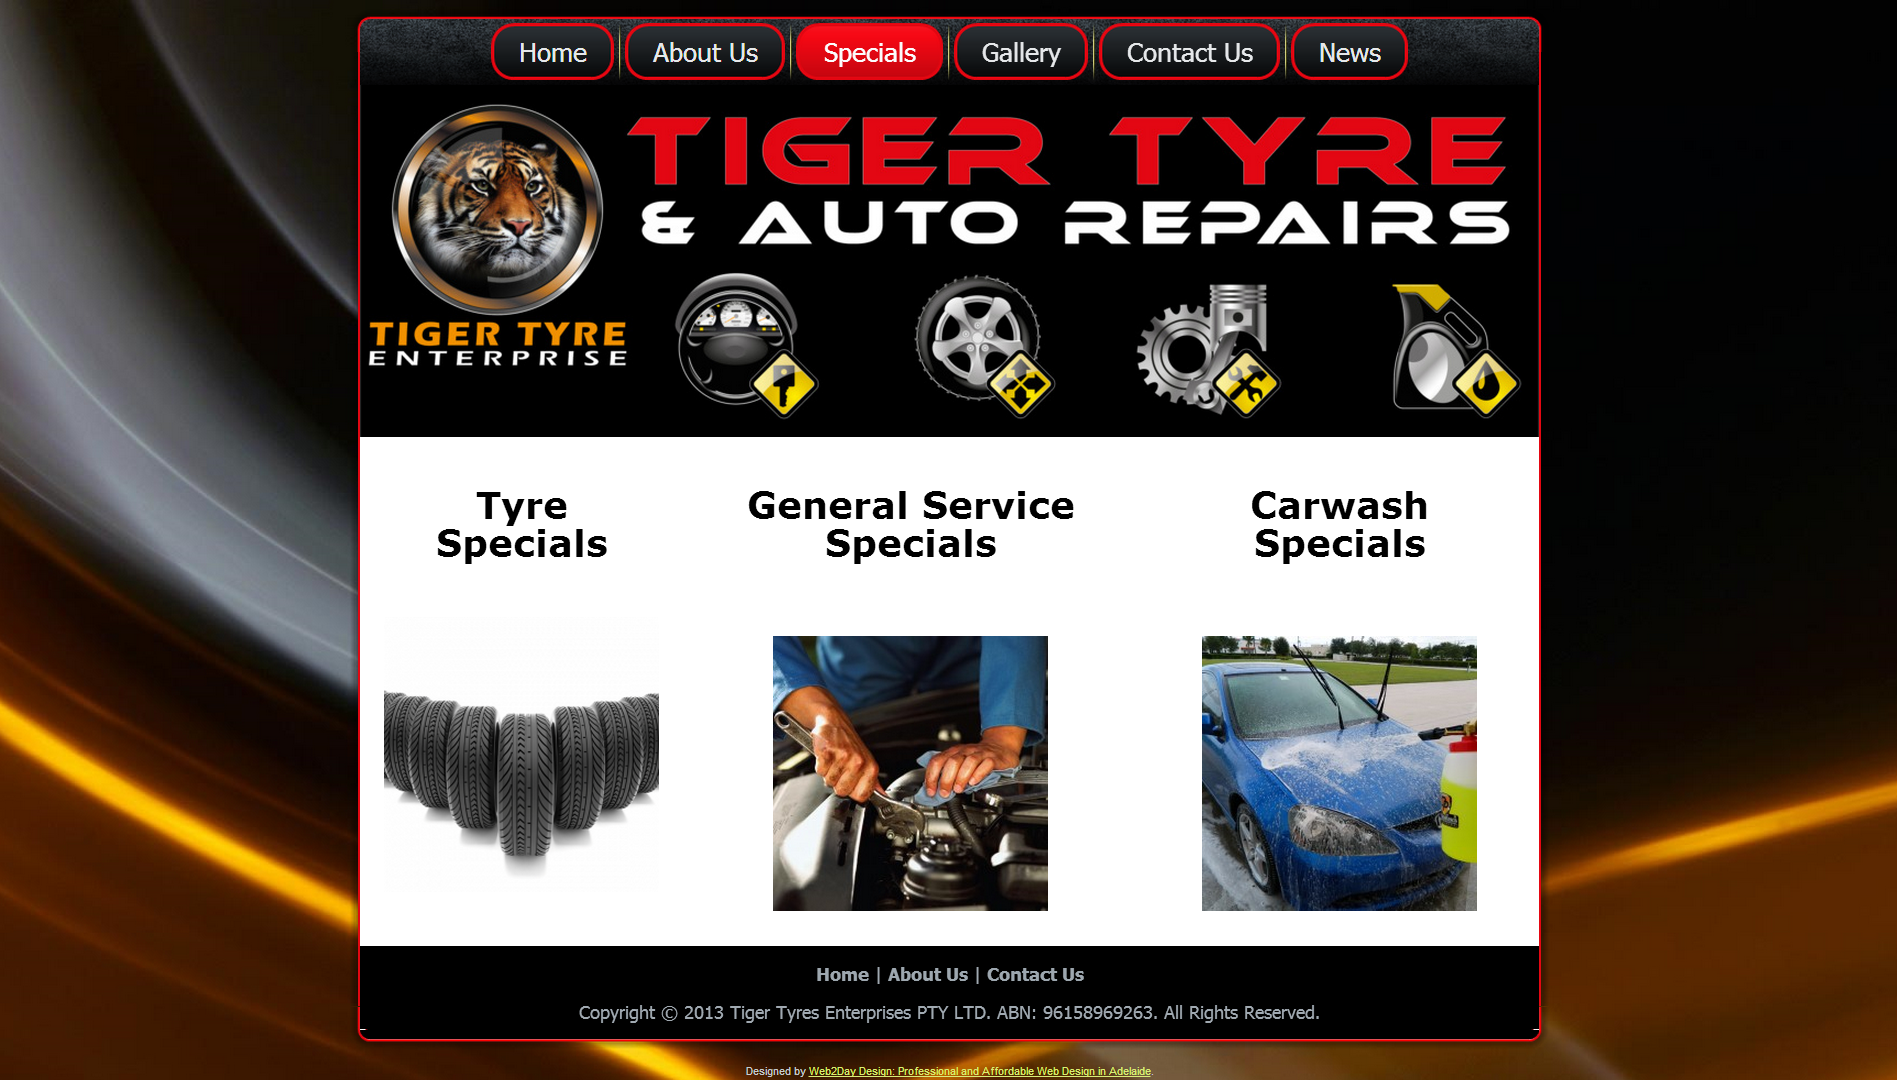 Webdesign for Tiger Tyre & Auto Repairs